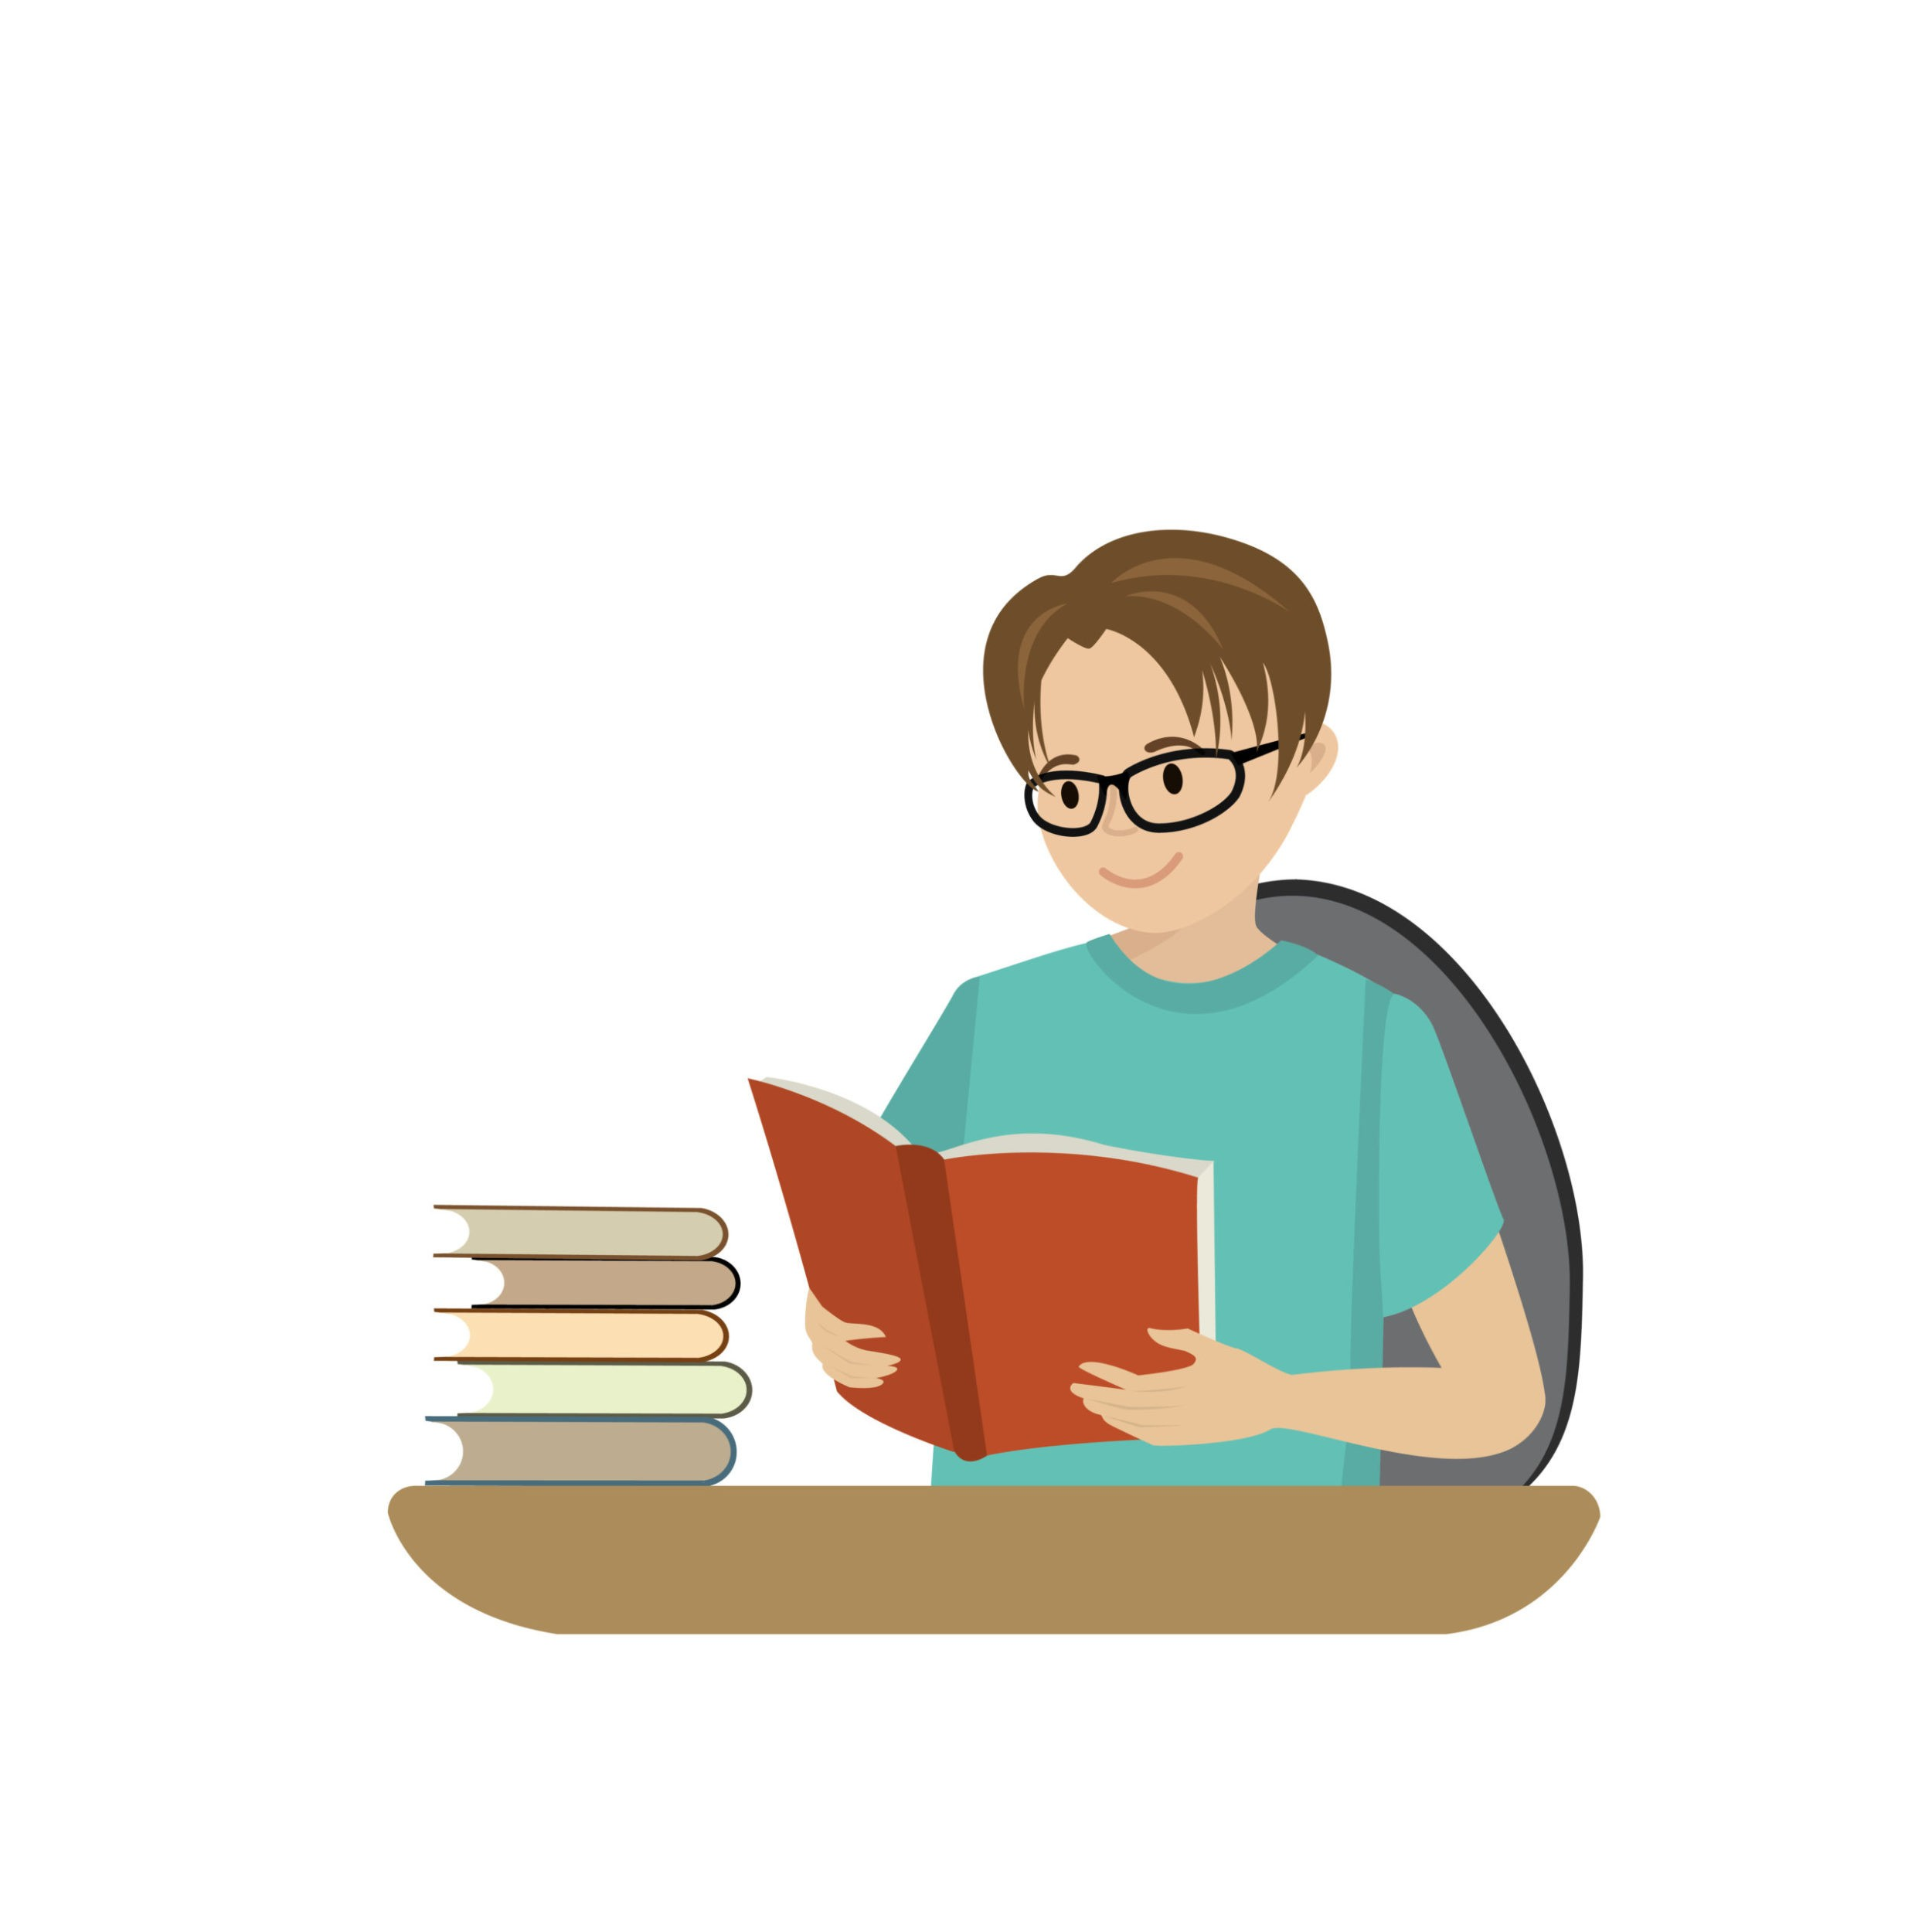 Boy with green shirt  and glasses reading open book.